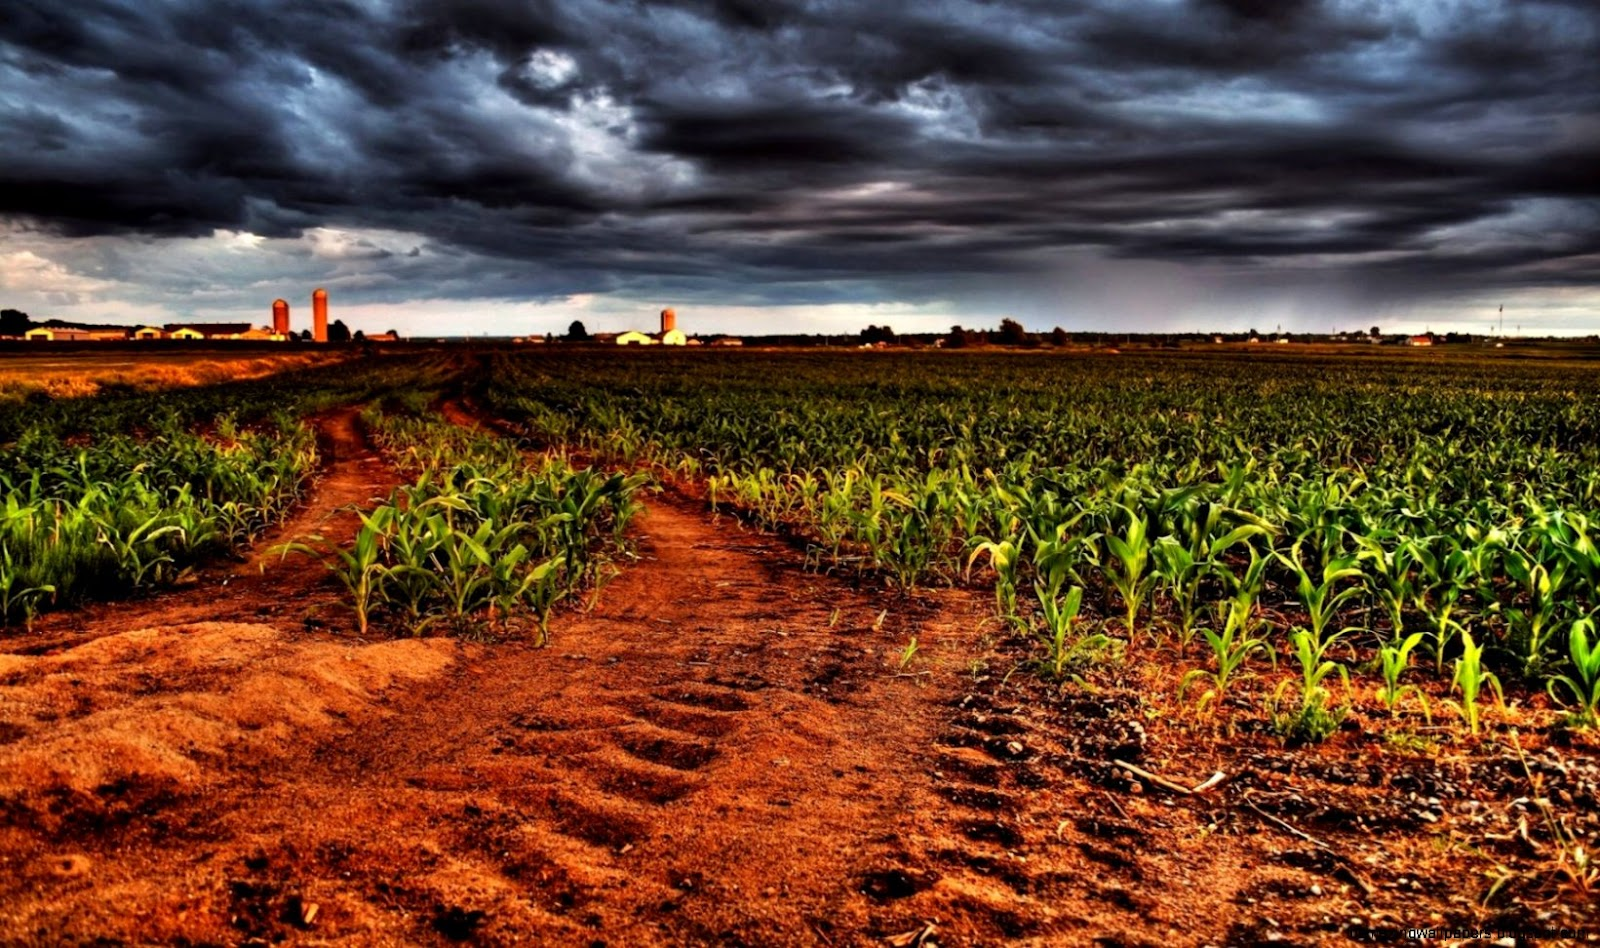 Wallpaper corn field harvest clouds soil desktop wallpaper